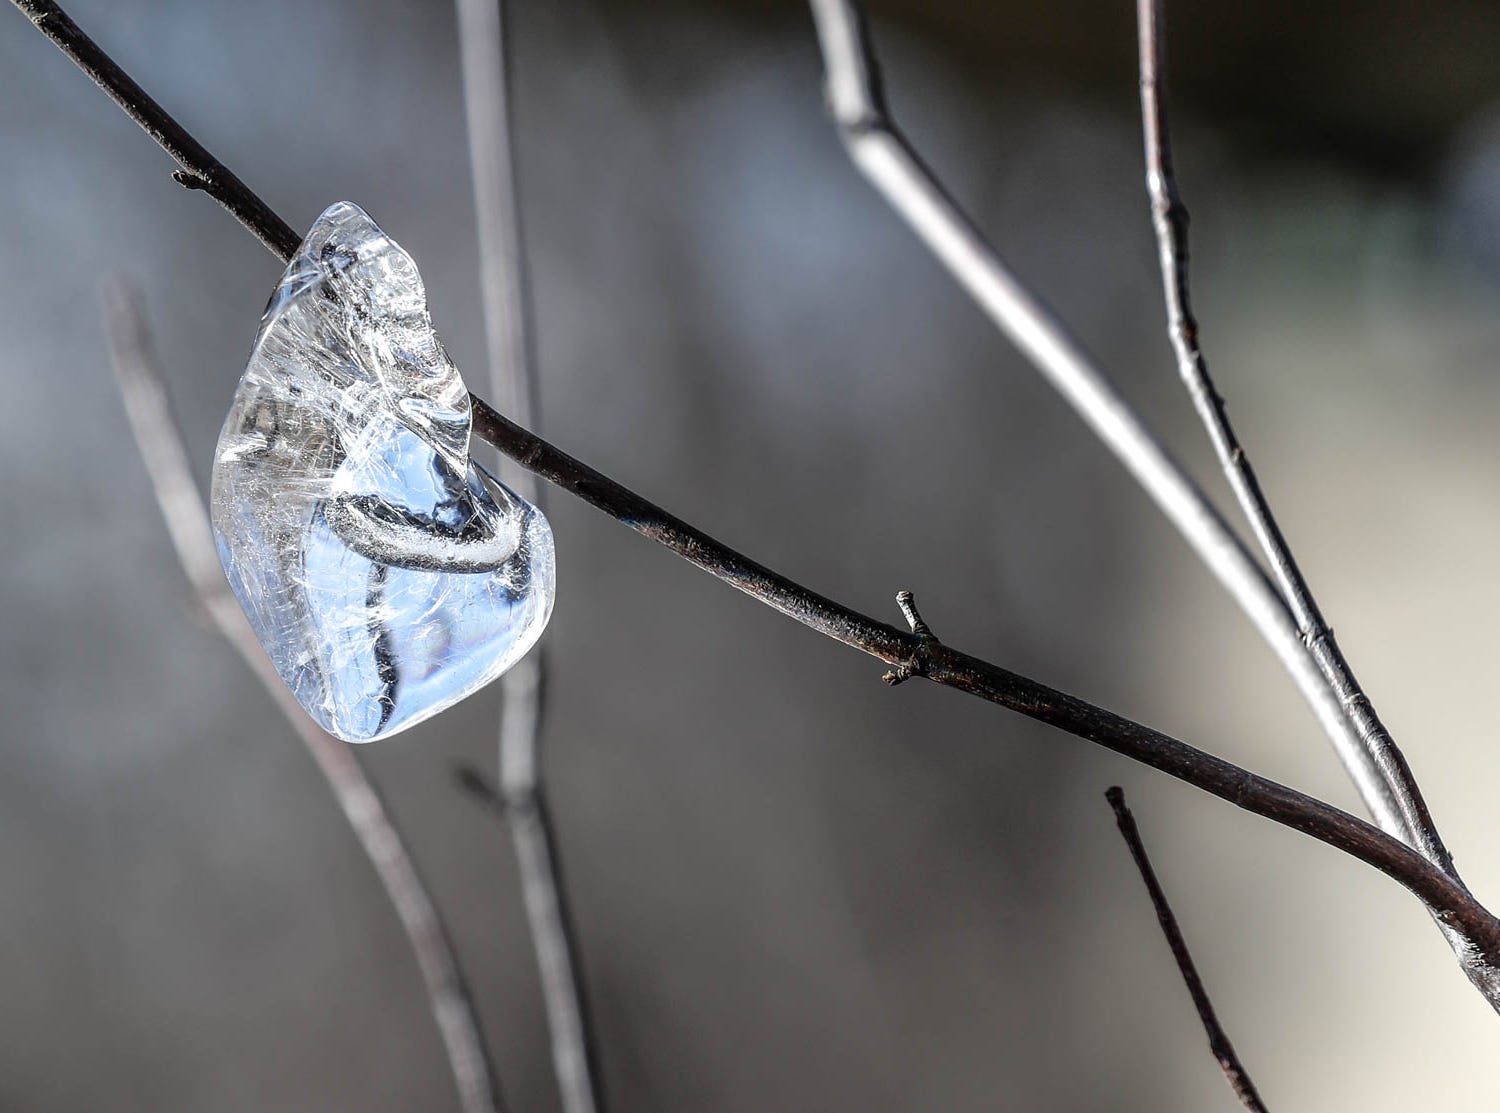 Ornaments of ice hang five to six feet off the ground in near sub-zero temperatures along the White River inside Friedman Park in Indianapolis on Thursday, Jan. 31, 2019. The ice formations indicate where high water was frozen when the river was up during sub-zero temps in previous days.